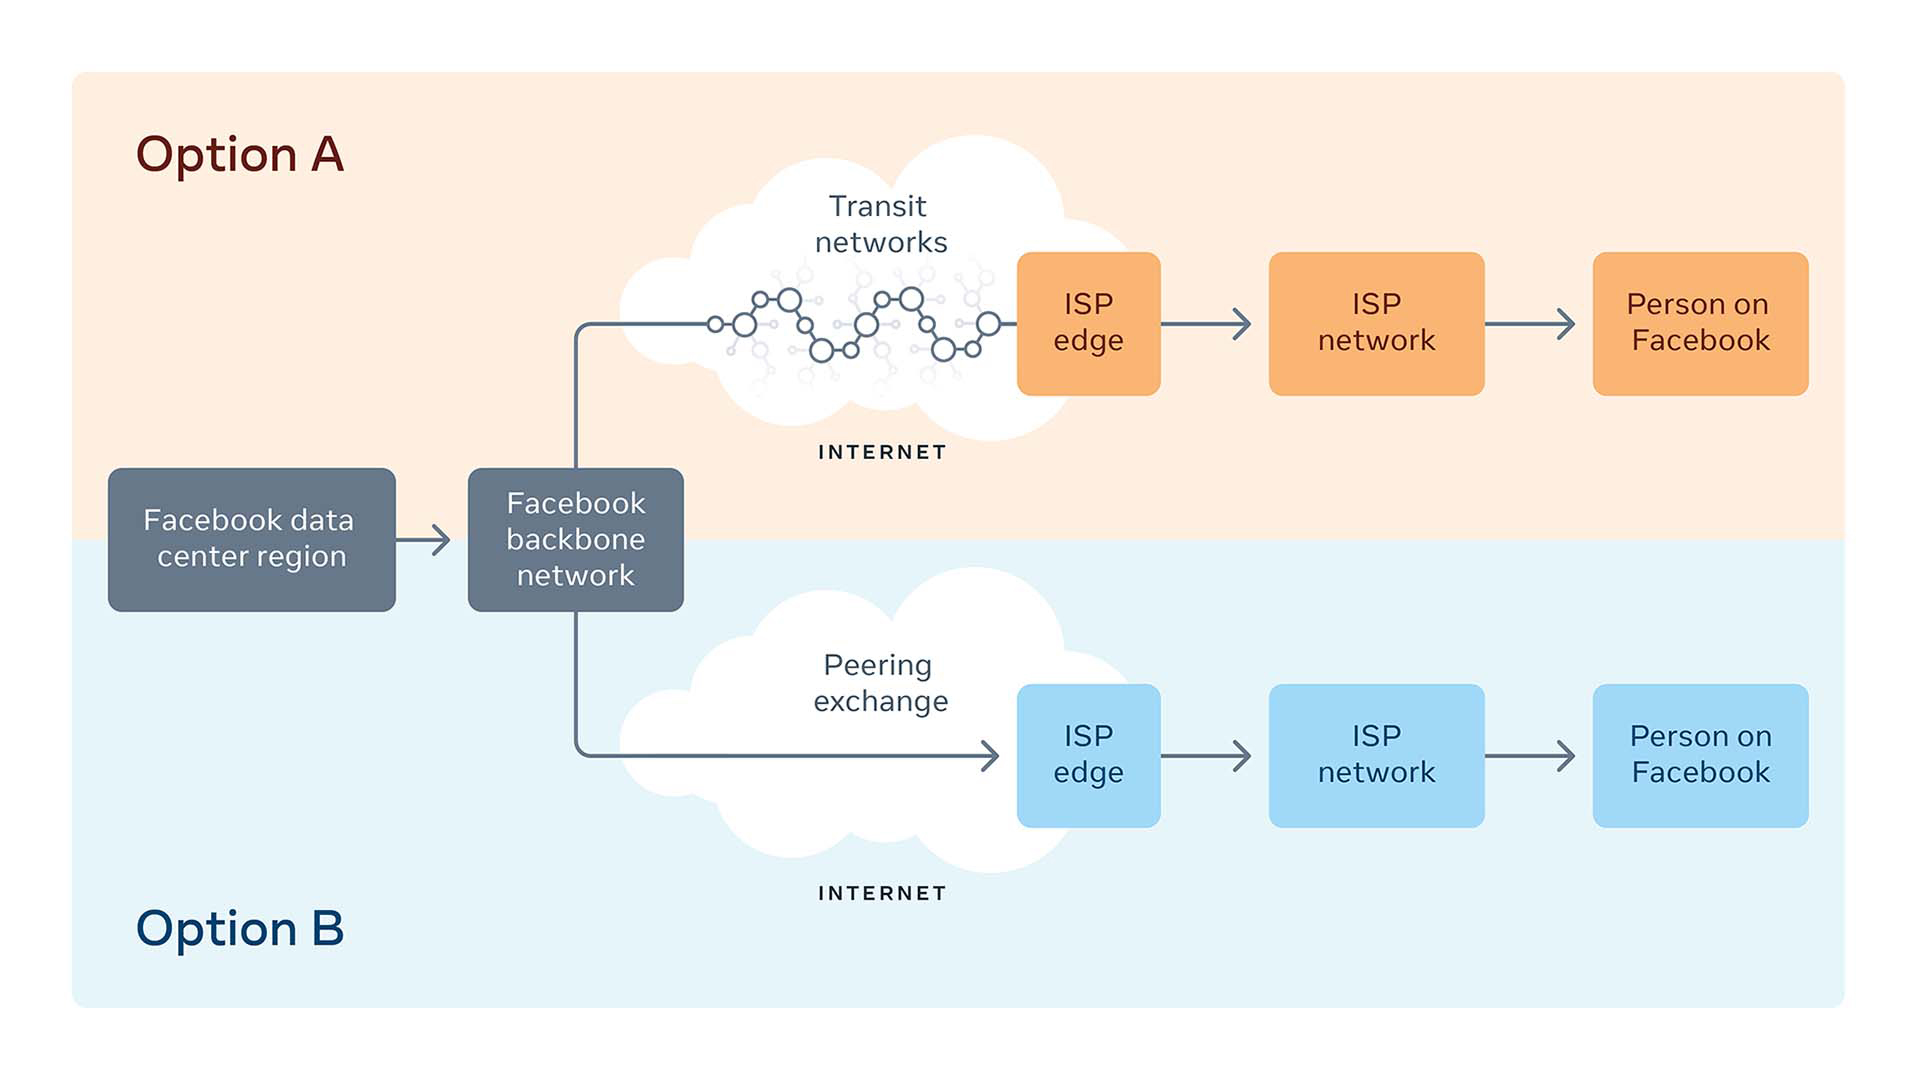 Peering automation uses the shortest path for a video before it reaches your device: